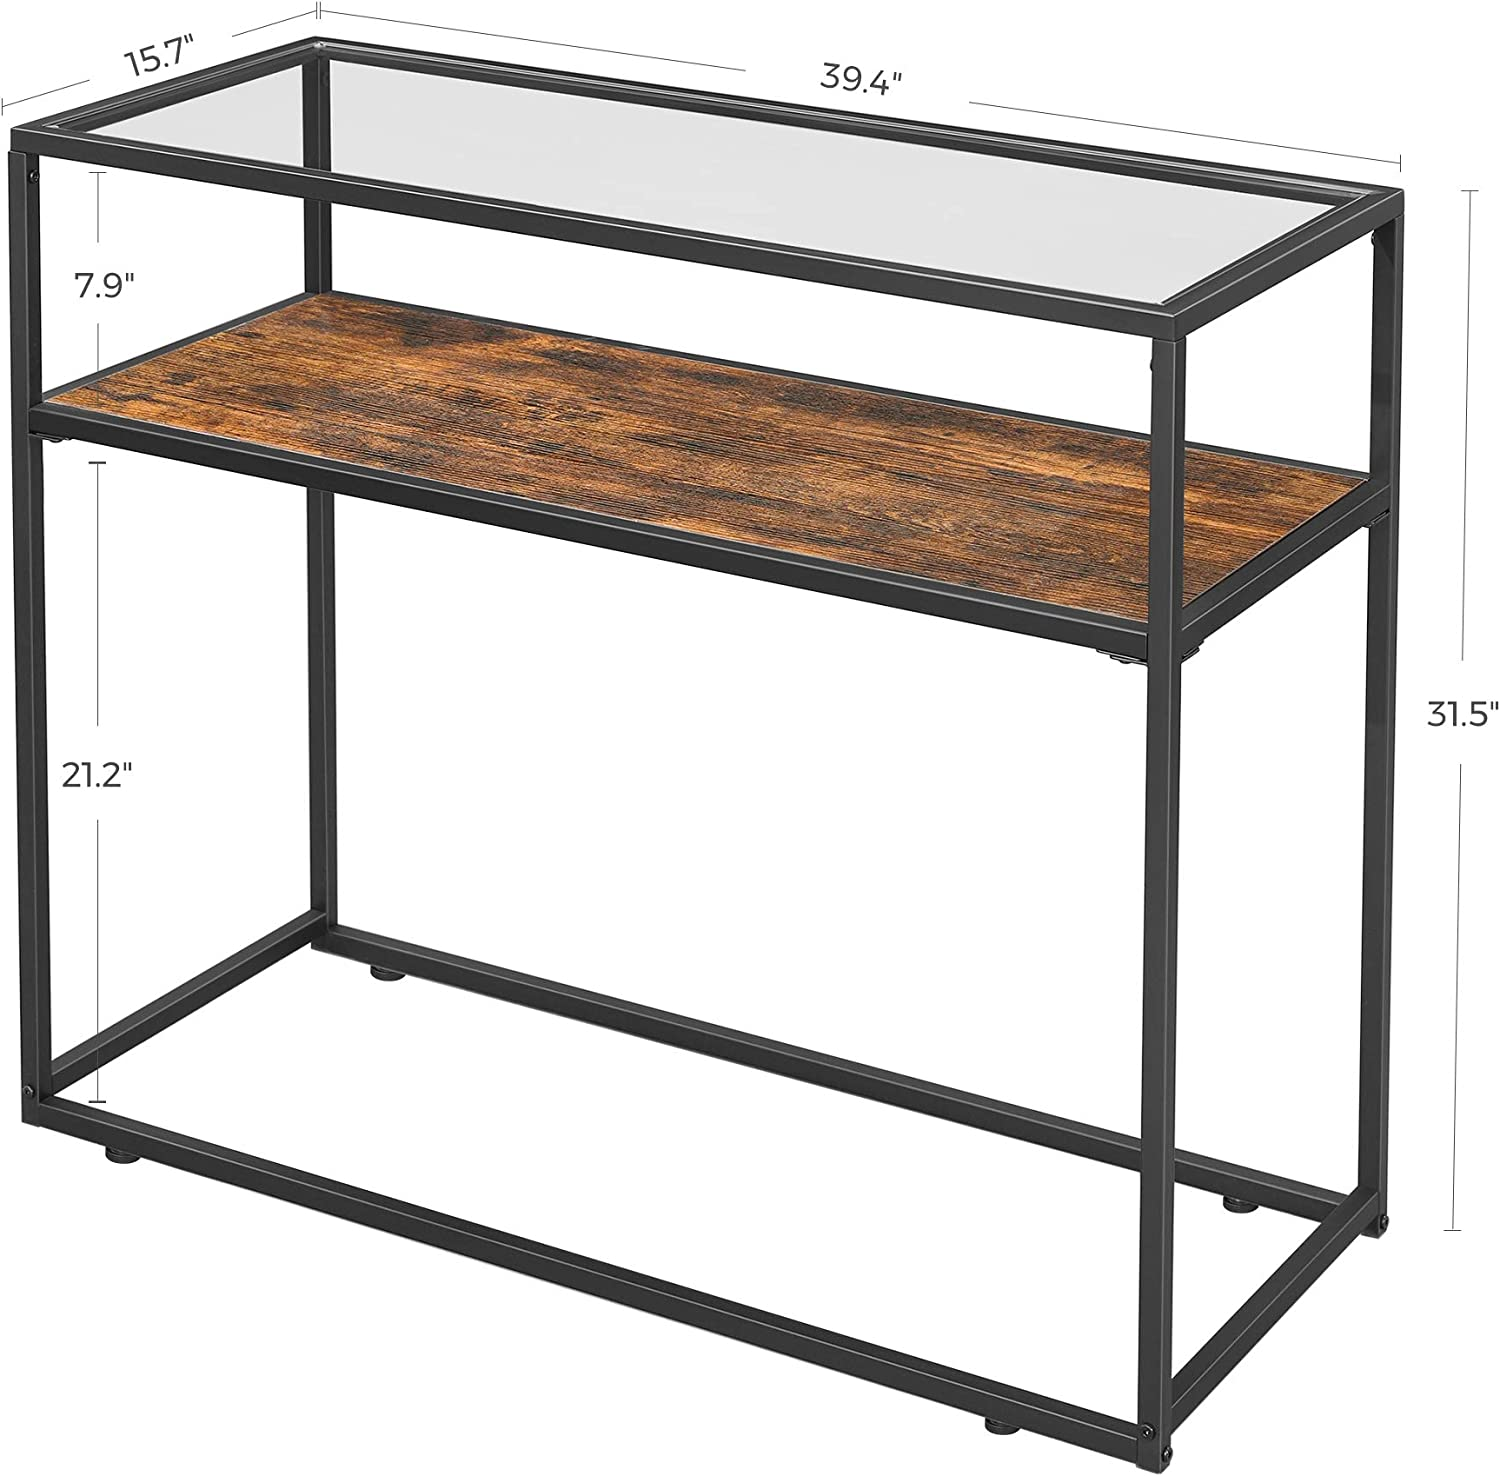 Rustic Brown and Black ULNT10BX Industrial Easy Assembly Tempered Glass Top and Sturdy Steel Frame for Living Room Hallway Entrance VASAGLE GLATAL Console Table